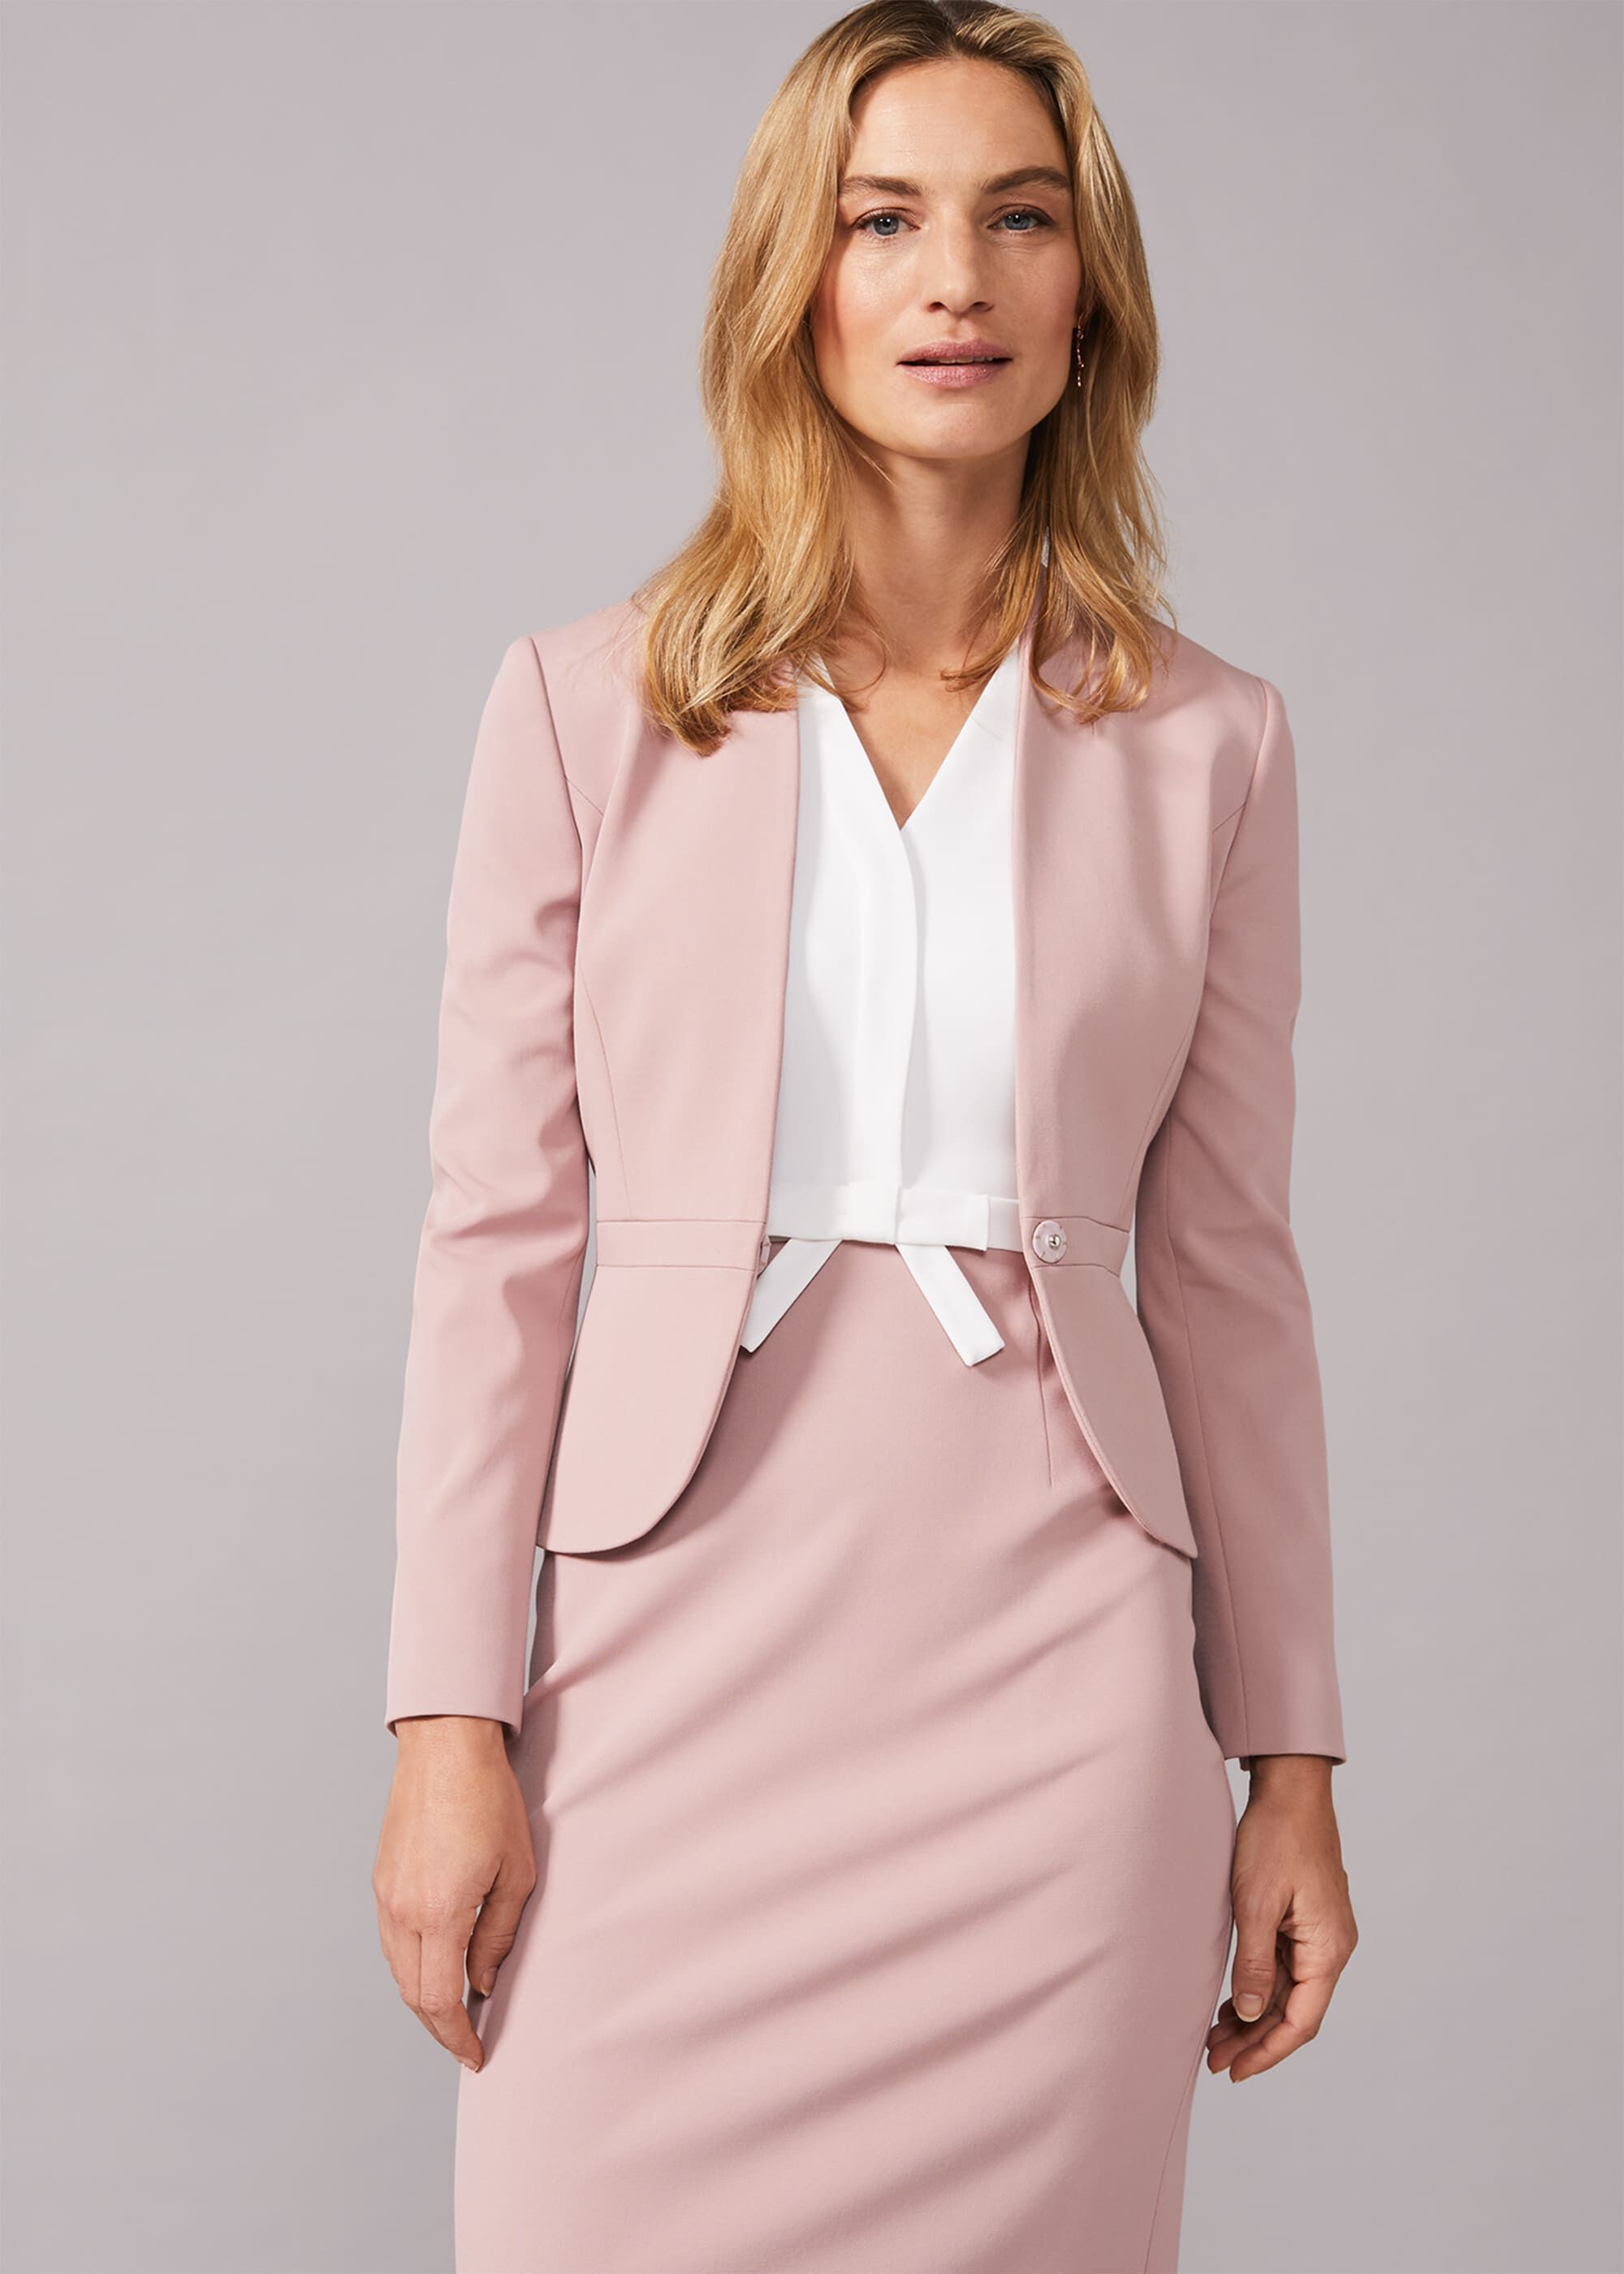 Phase Eight Loanne Occasion Jacket, Pink